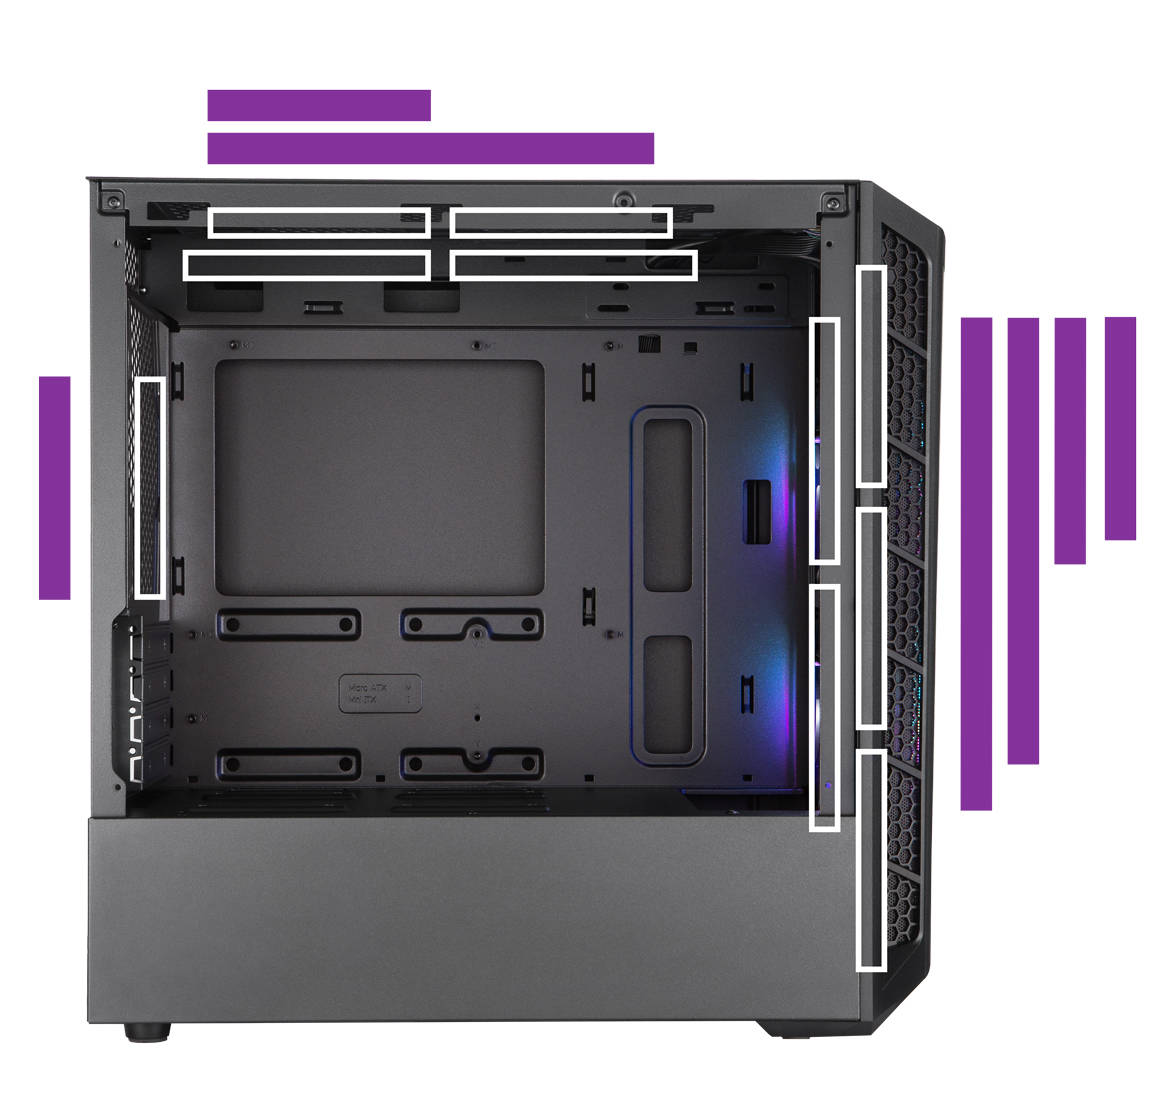 MasterBox MB3xxL cooling options